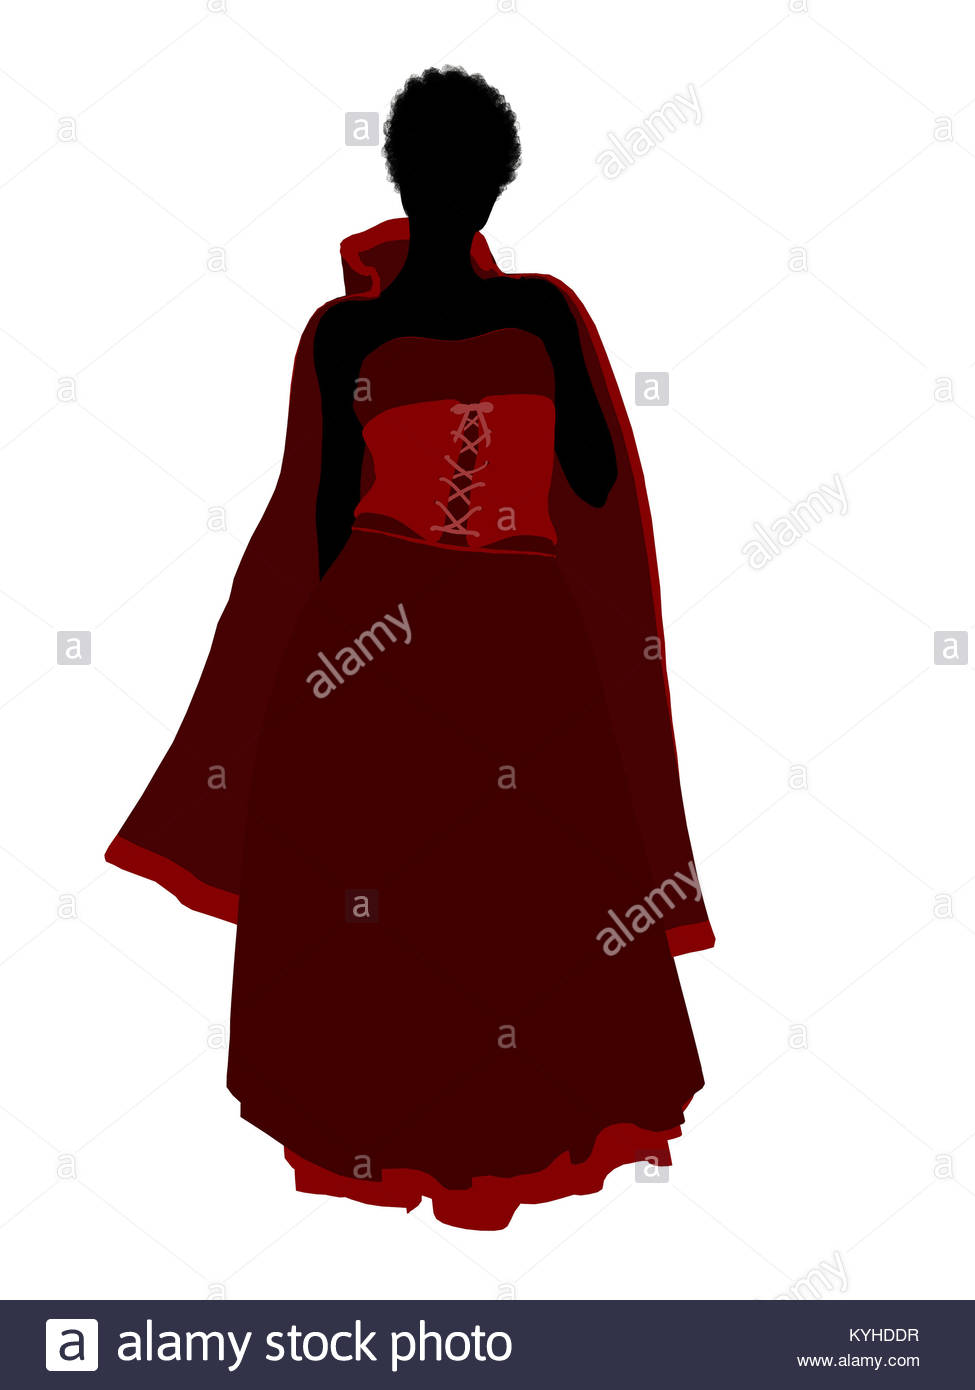 975x1390 Red Riding Hood Illustration Stock Photos Amp Red Riding Hood